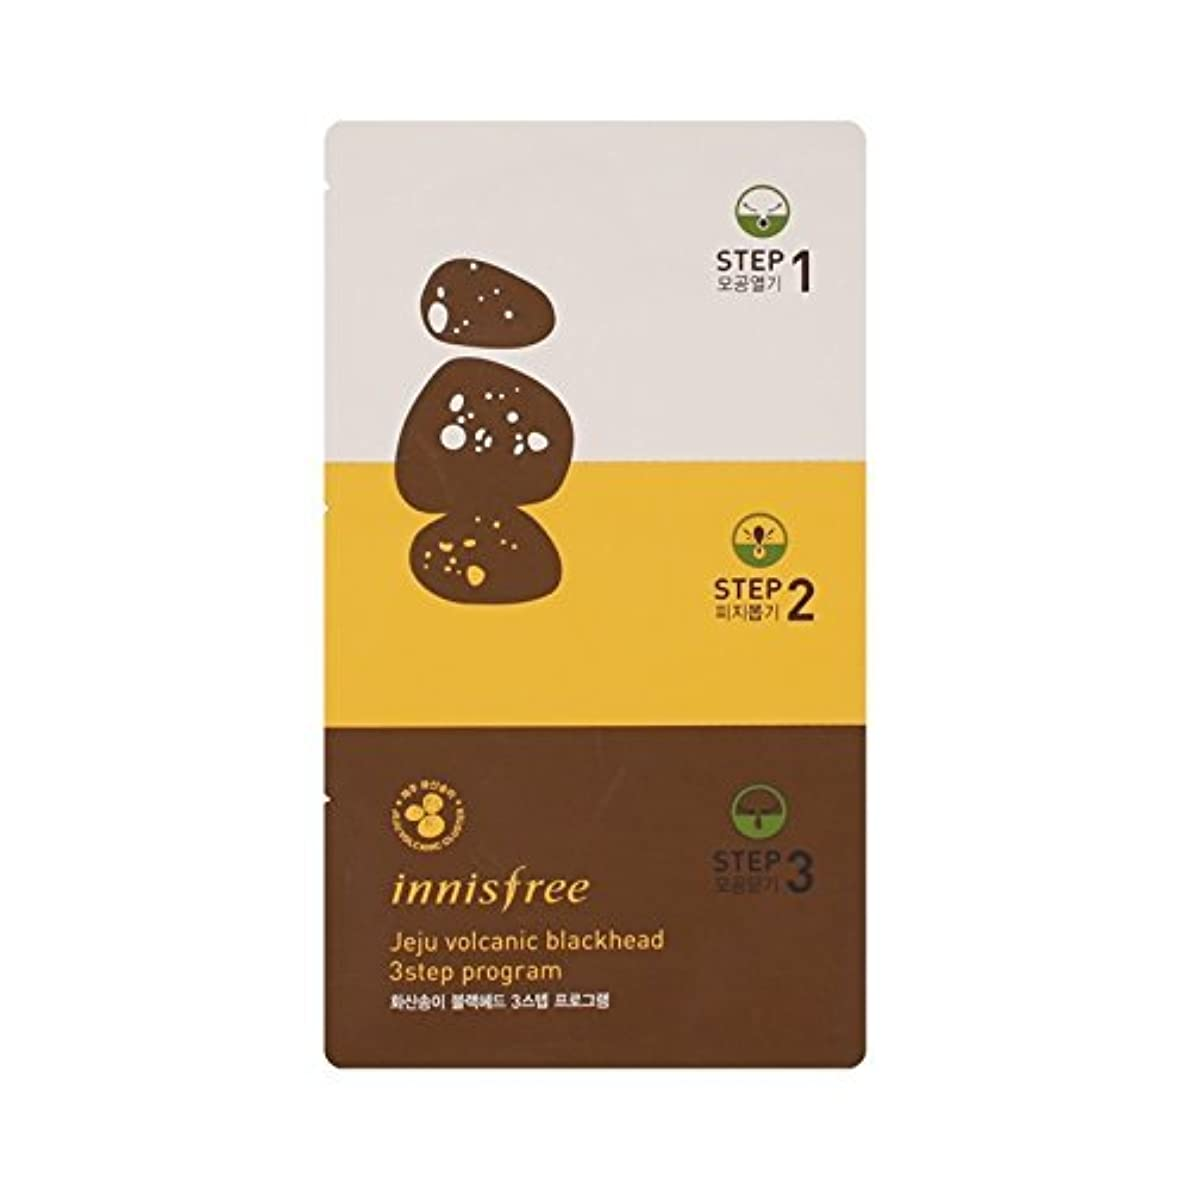 乱用考古学ランクBuy 1 Get 1 Innisfree Jeju Volcanic Blackhead 3step Program, korean cosmetics